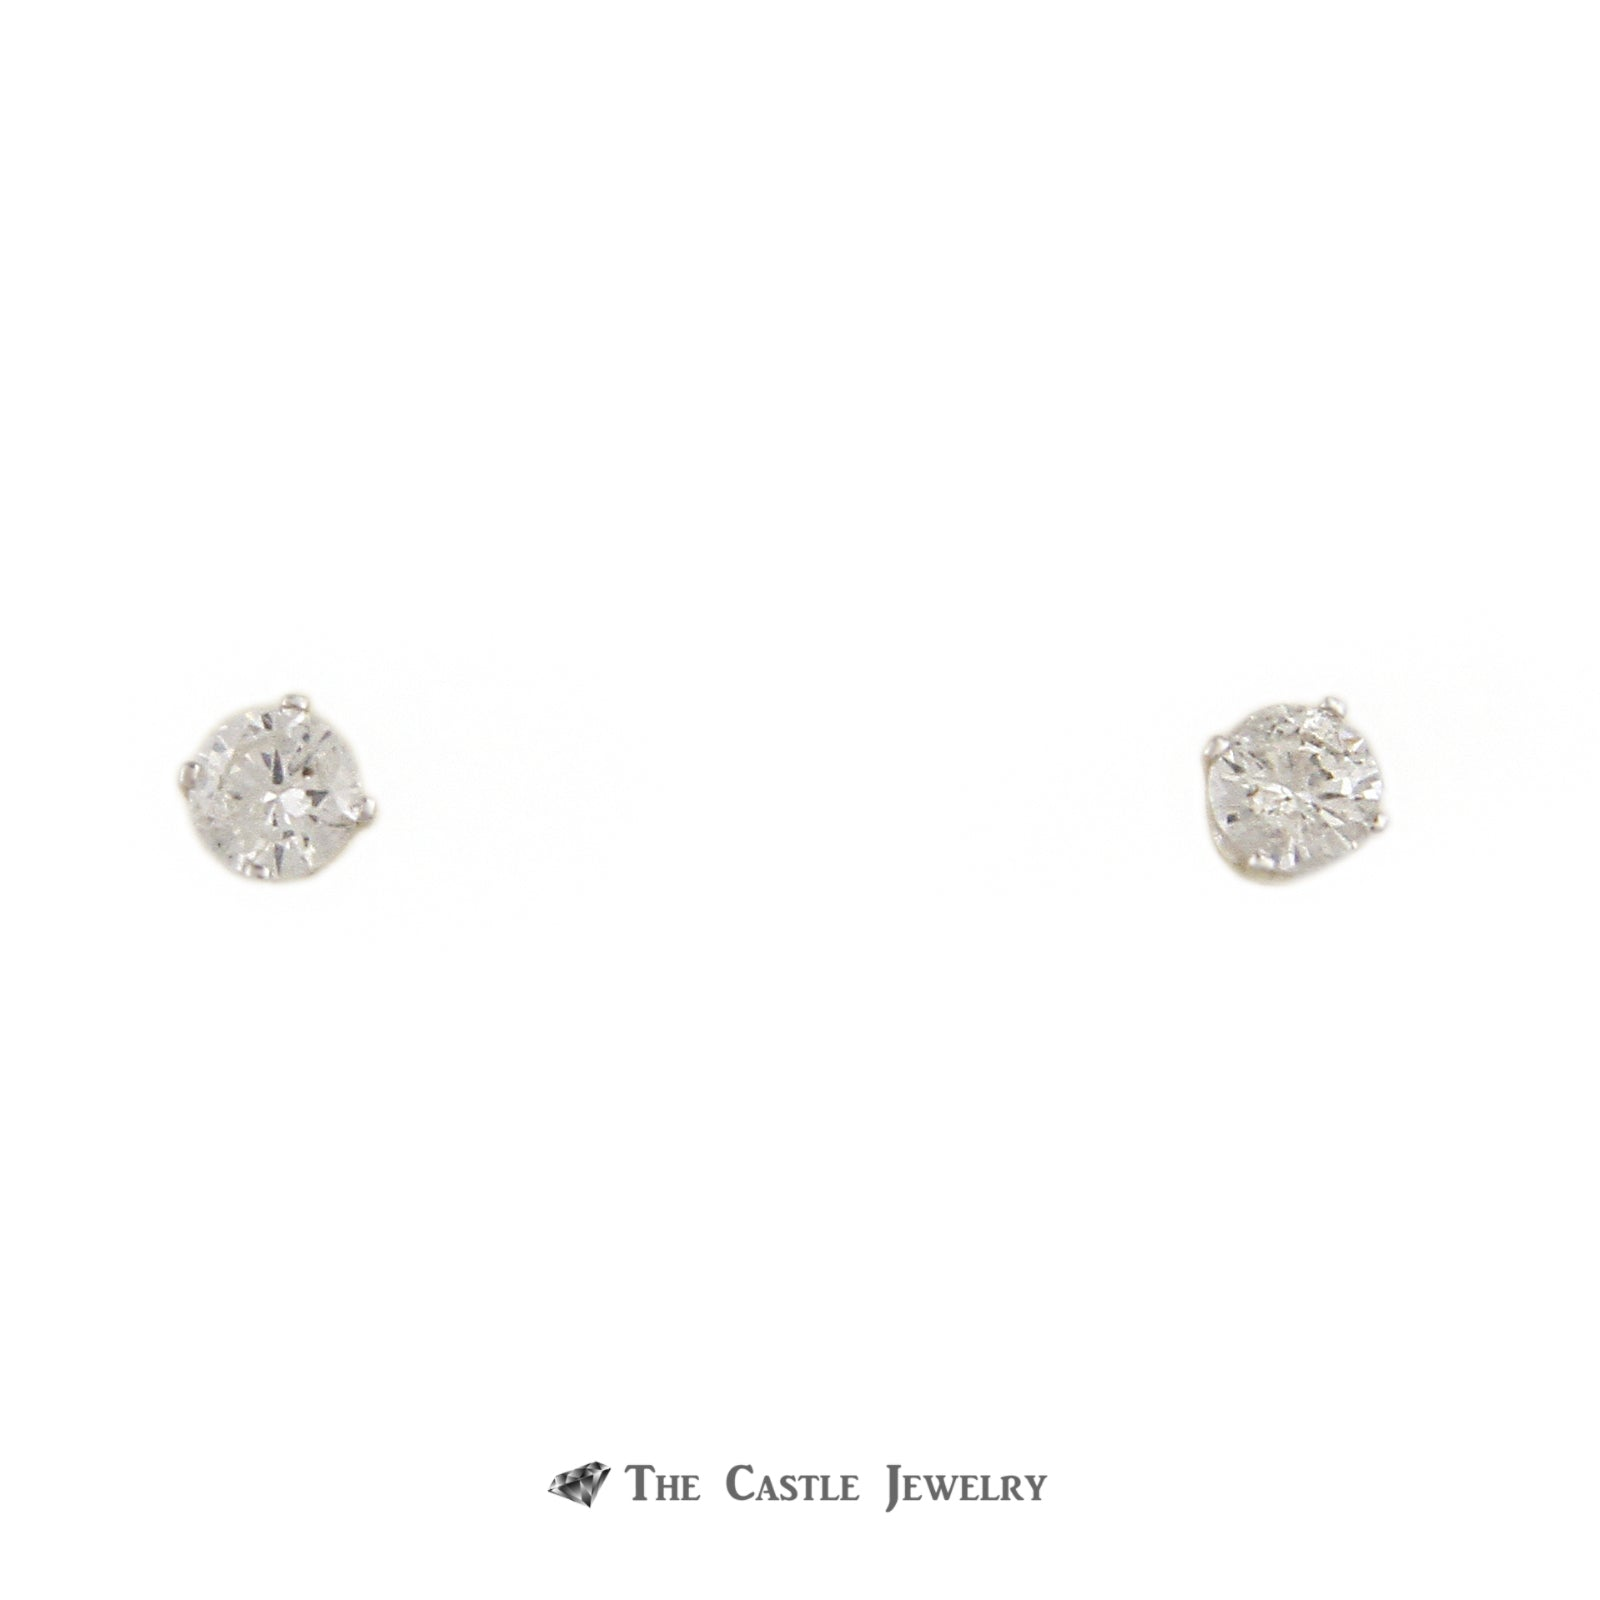 Round Brilliant Cut .50cttw Diamond Stud Earrings w/ Butterfly Backs Crafted in 14k White Gold